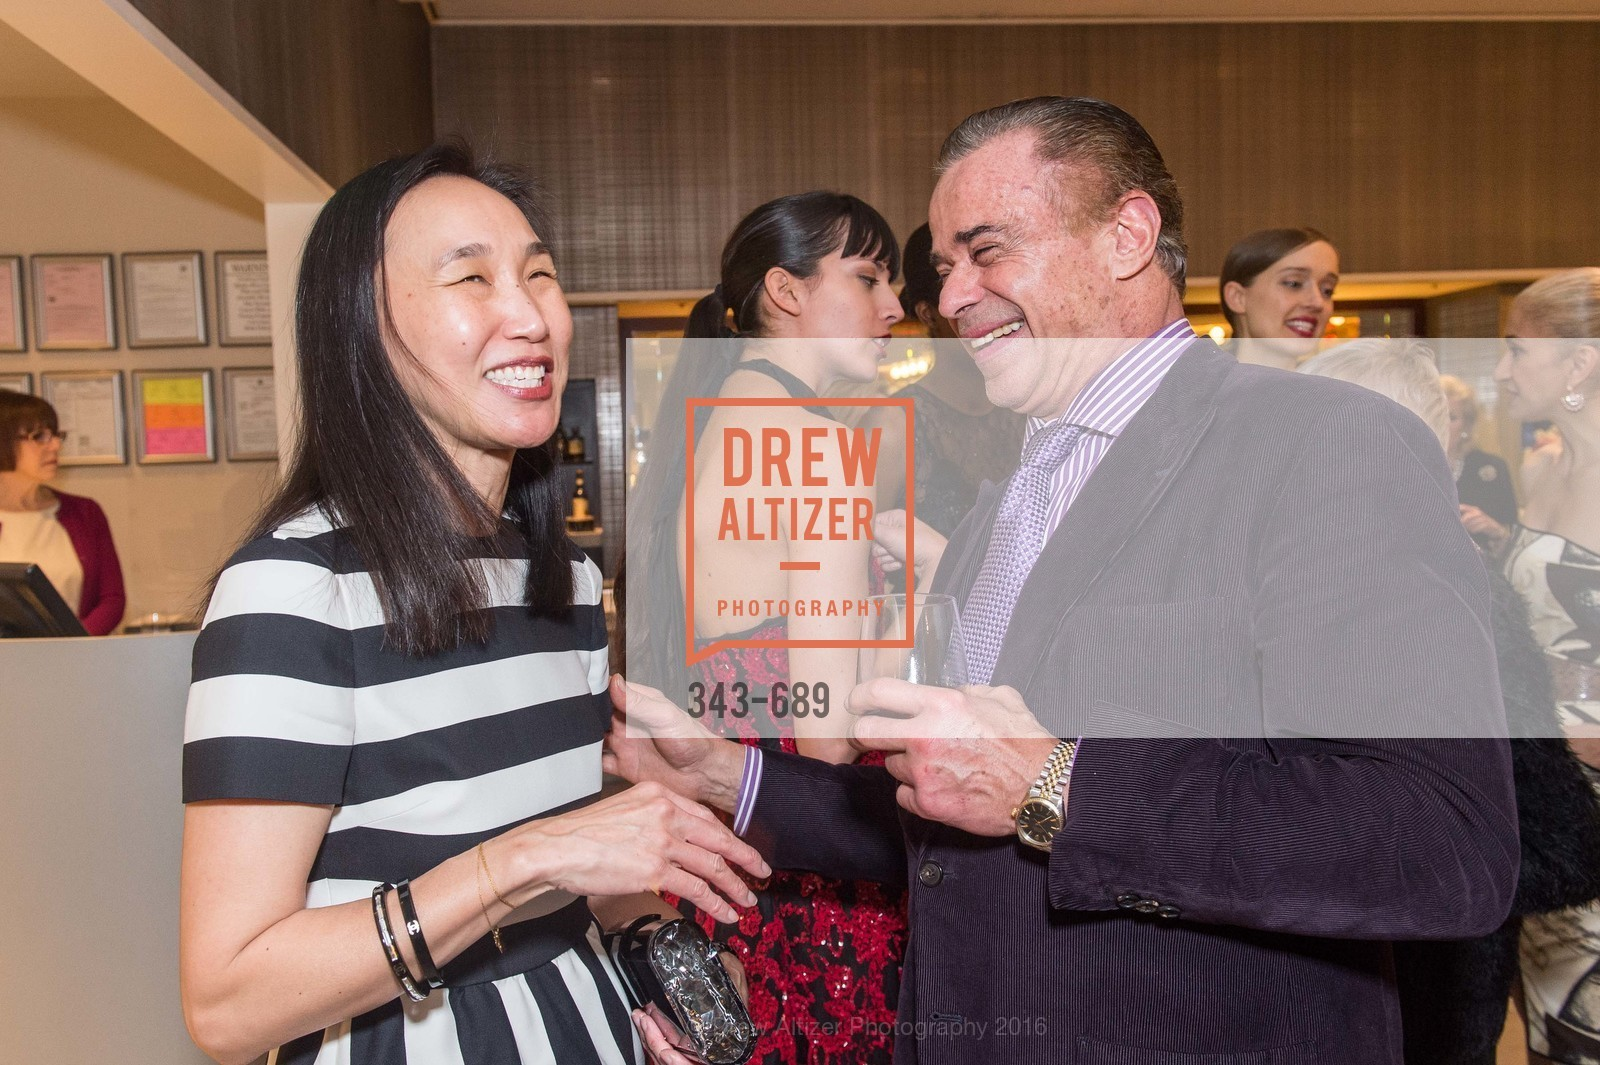 Carolyn Chang, Boaz Mazor, Oscar de la Renta Cocktail Party with Boaz Mazor, The Rotunda Restaurant, January 19th, 2016,Drew Altizer, Drew Altizer Photography, full-service event agency, private events, San Francisco photographer, photographer California